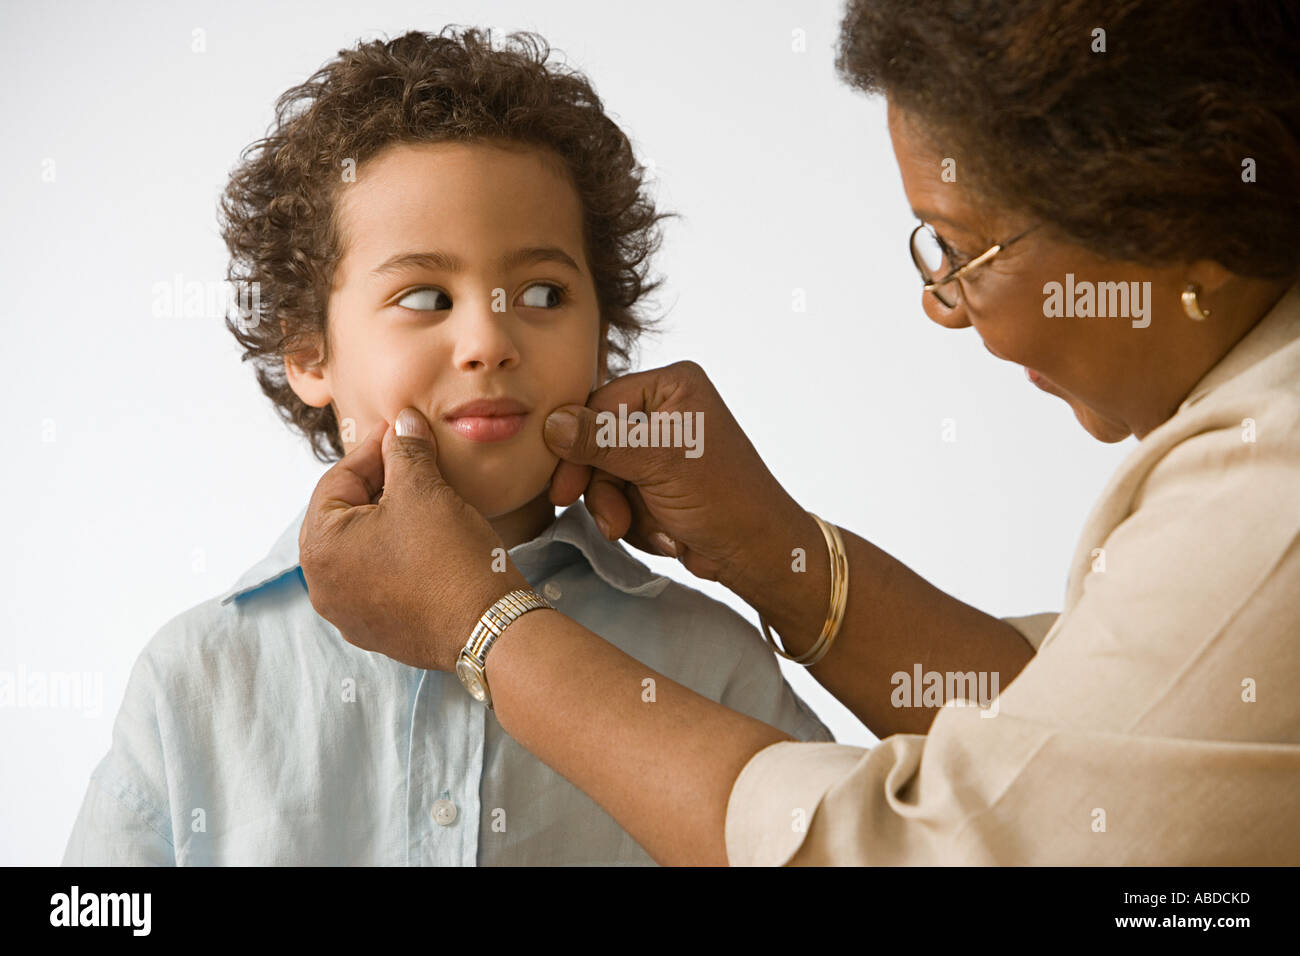 Grandmother pinching grandson's cheeks - Stock Image